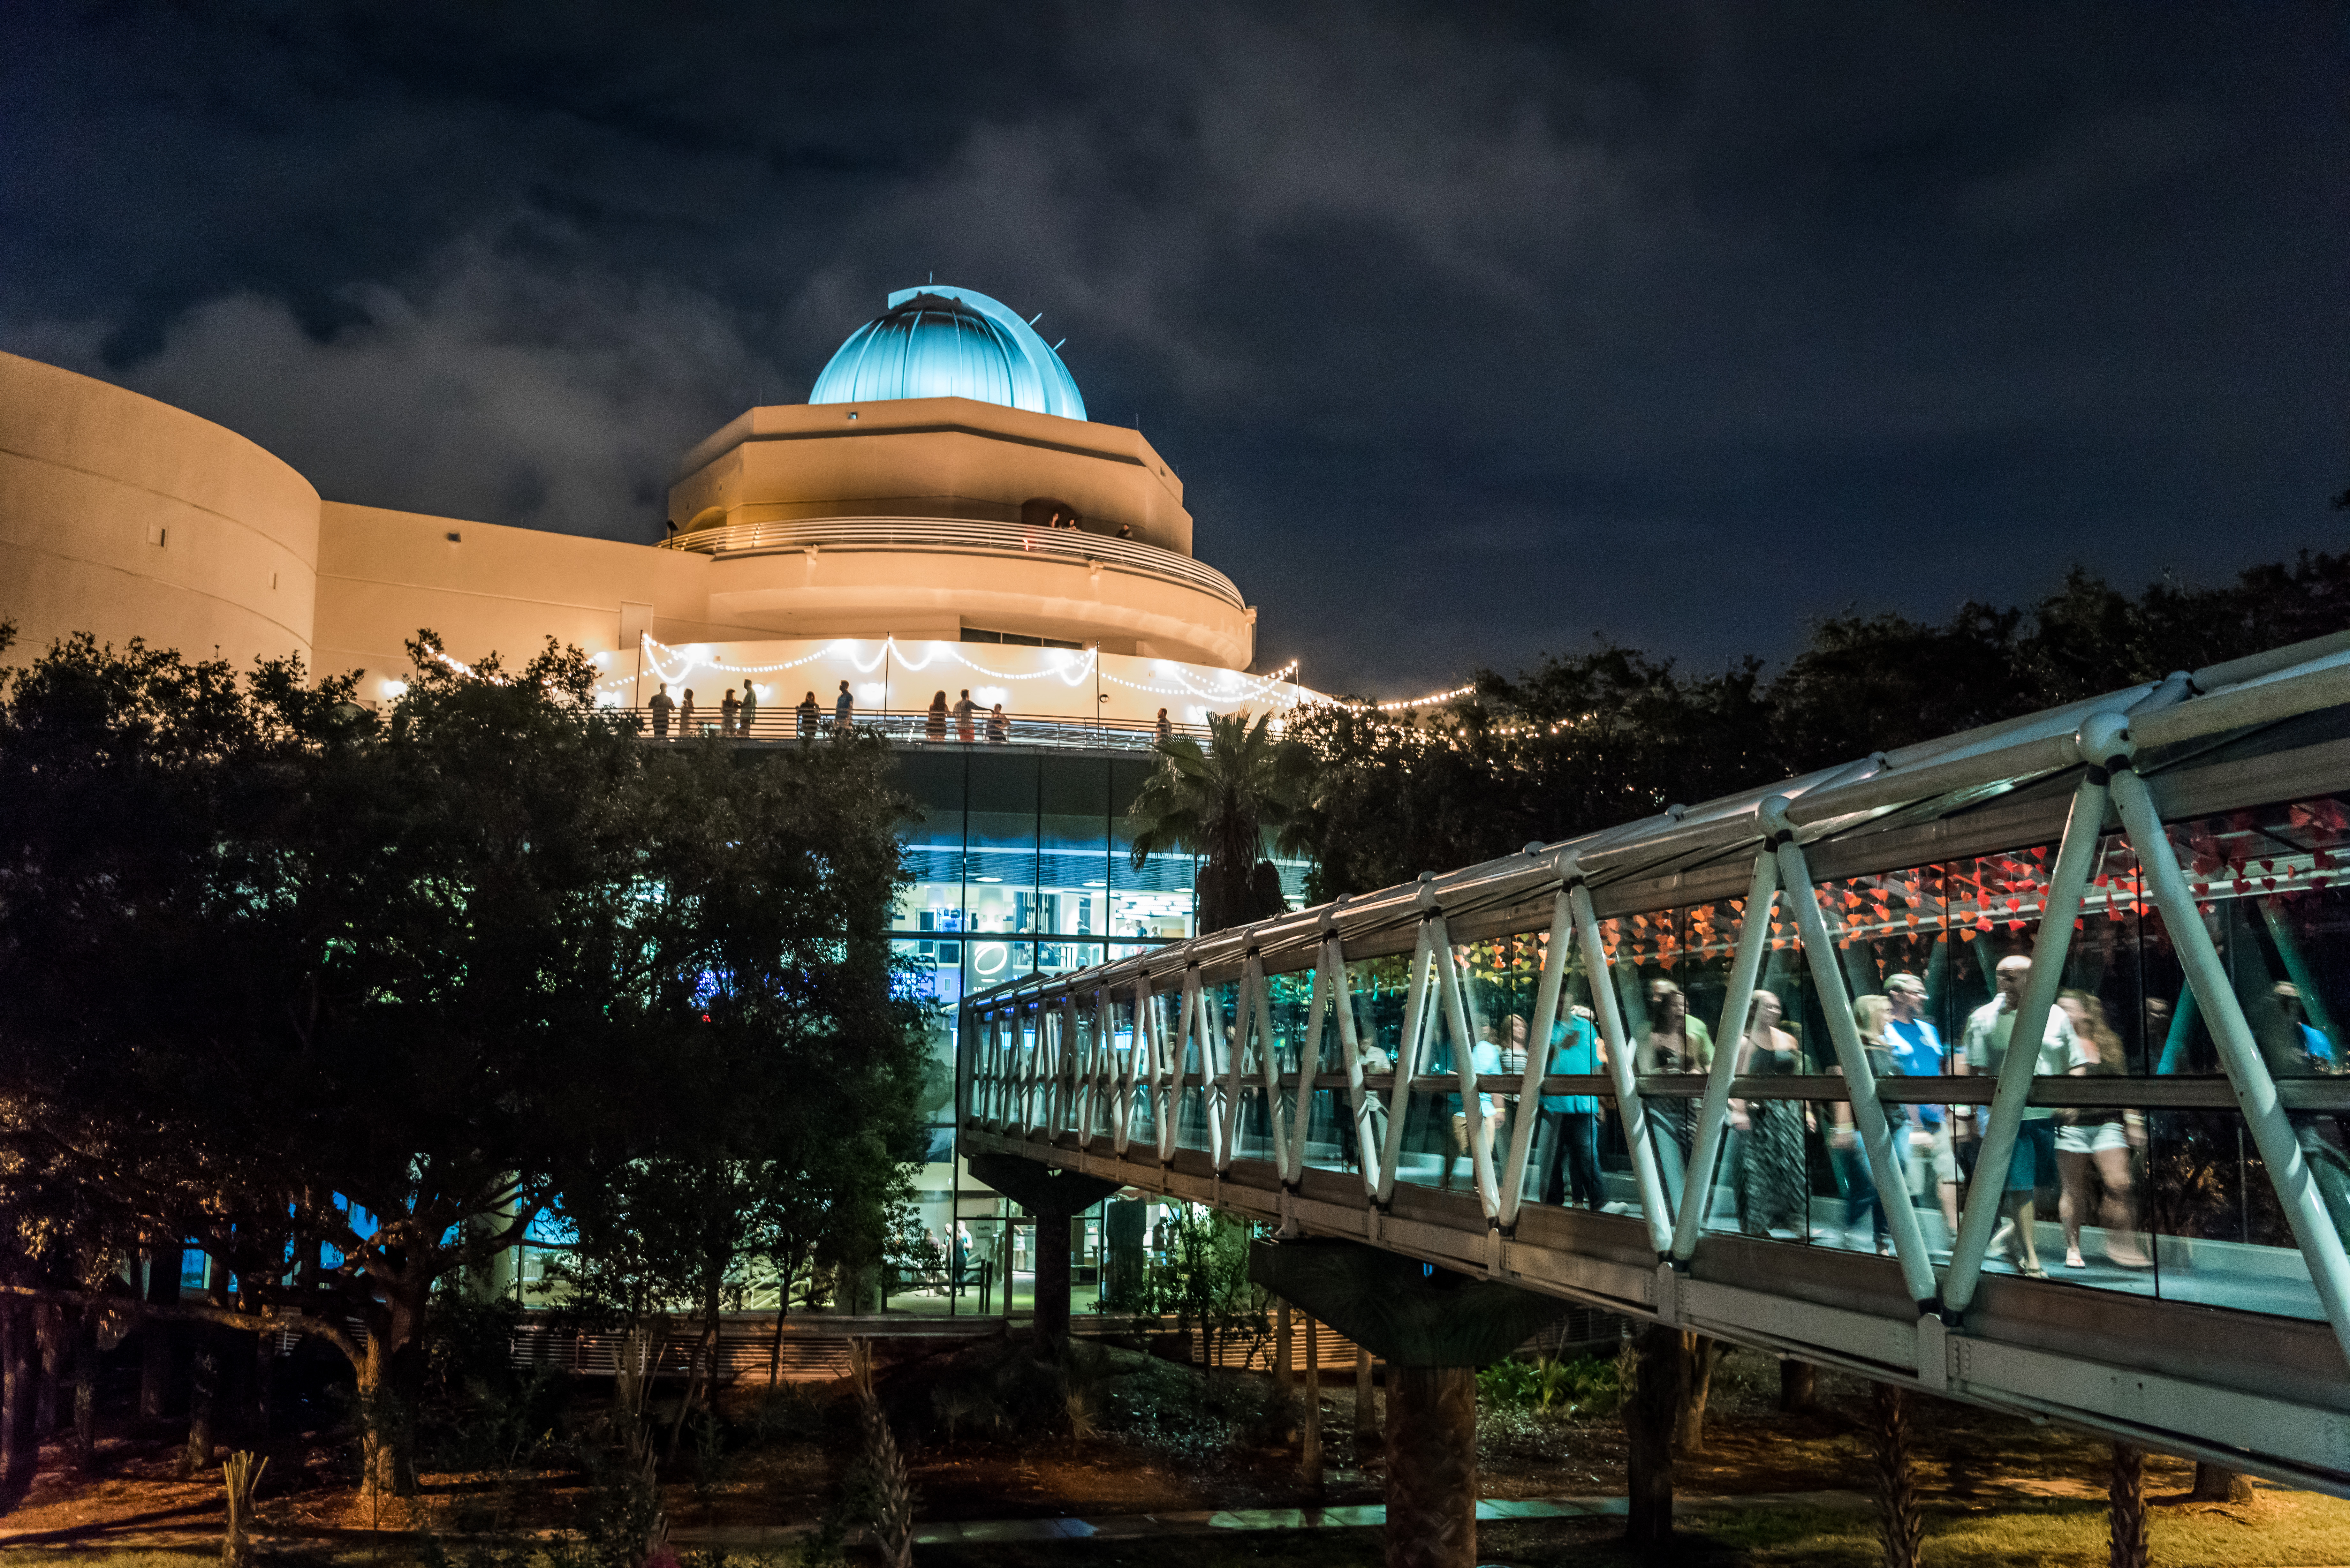 Science Night Live at the Orlando Science Museum | PHOTO: Roberto Gonzalez